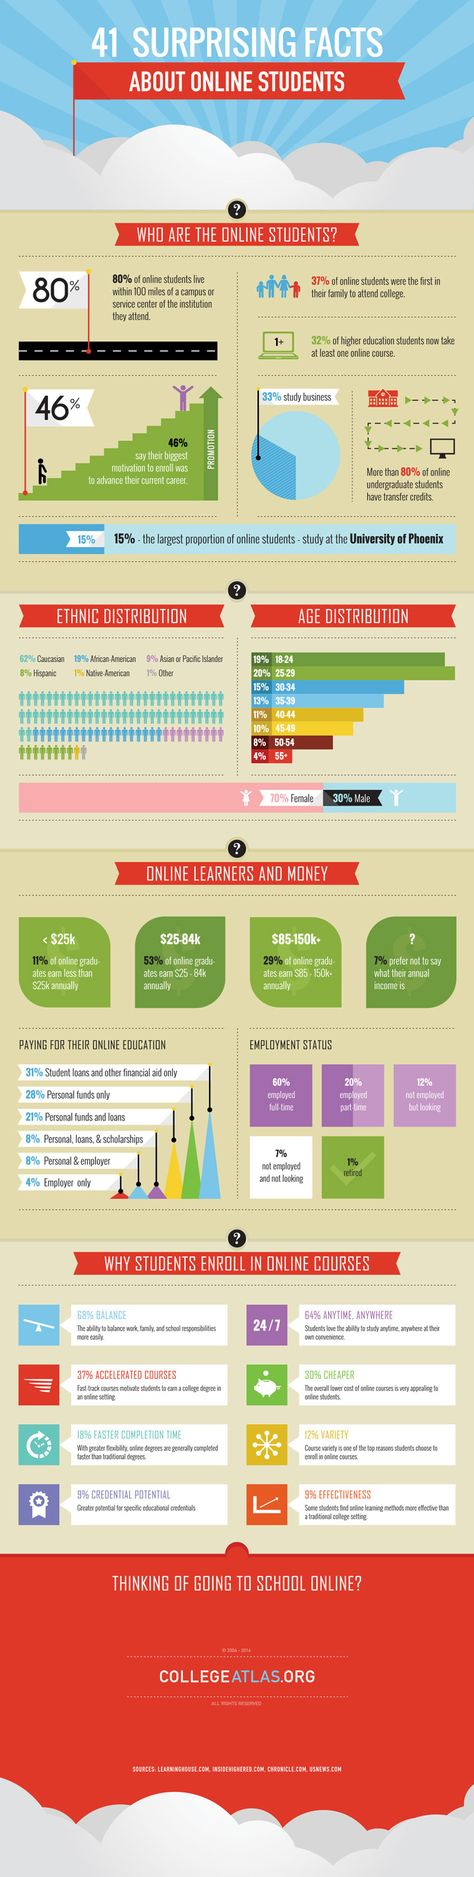 Who Is the Average Online College Student? [#Infographic]